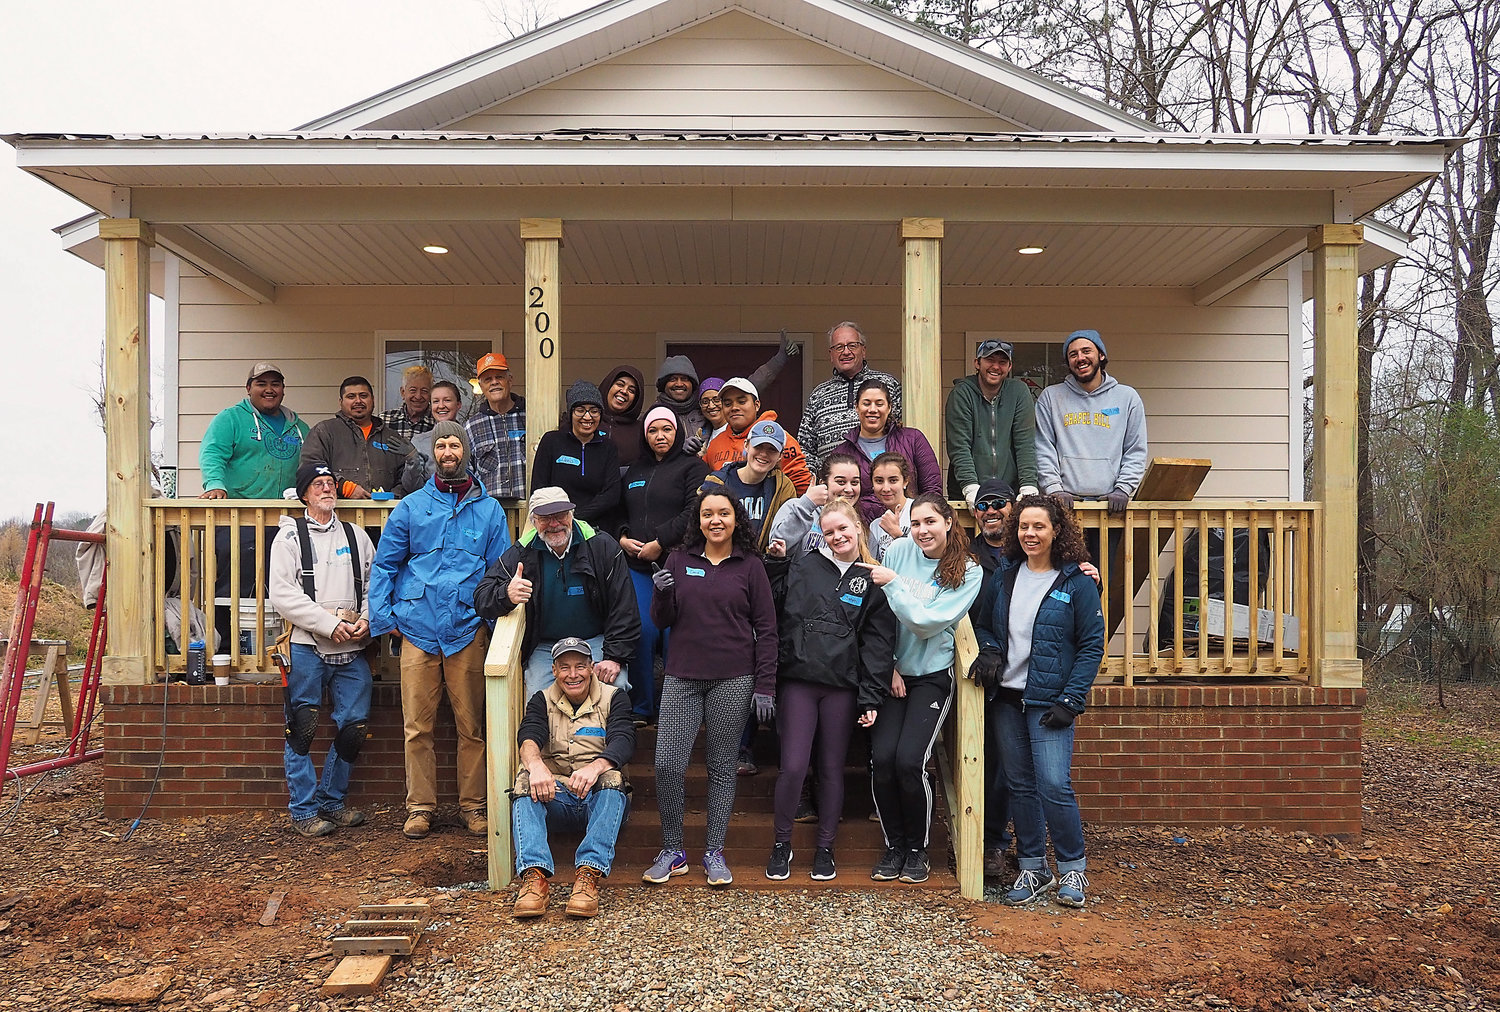 Staff and volunteers stand on the porch the home they worked on during the day of service event on Saturday. They are joined by Dania Gonzales, (center in the purple top), who will own the home after the build is complete.